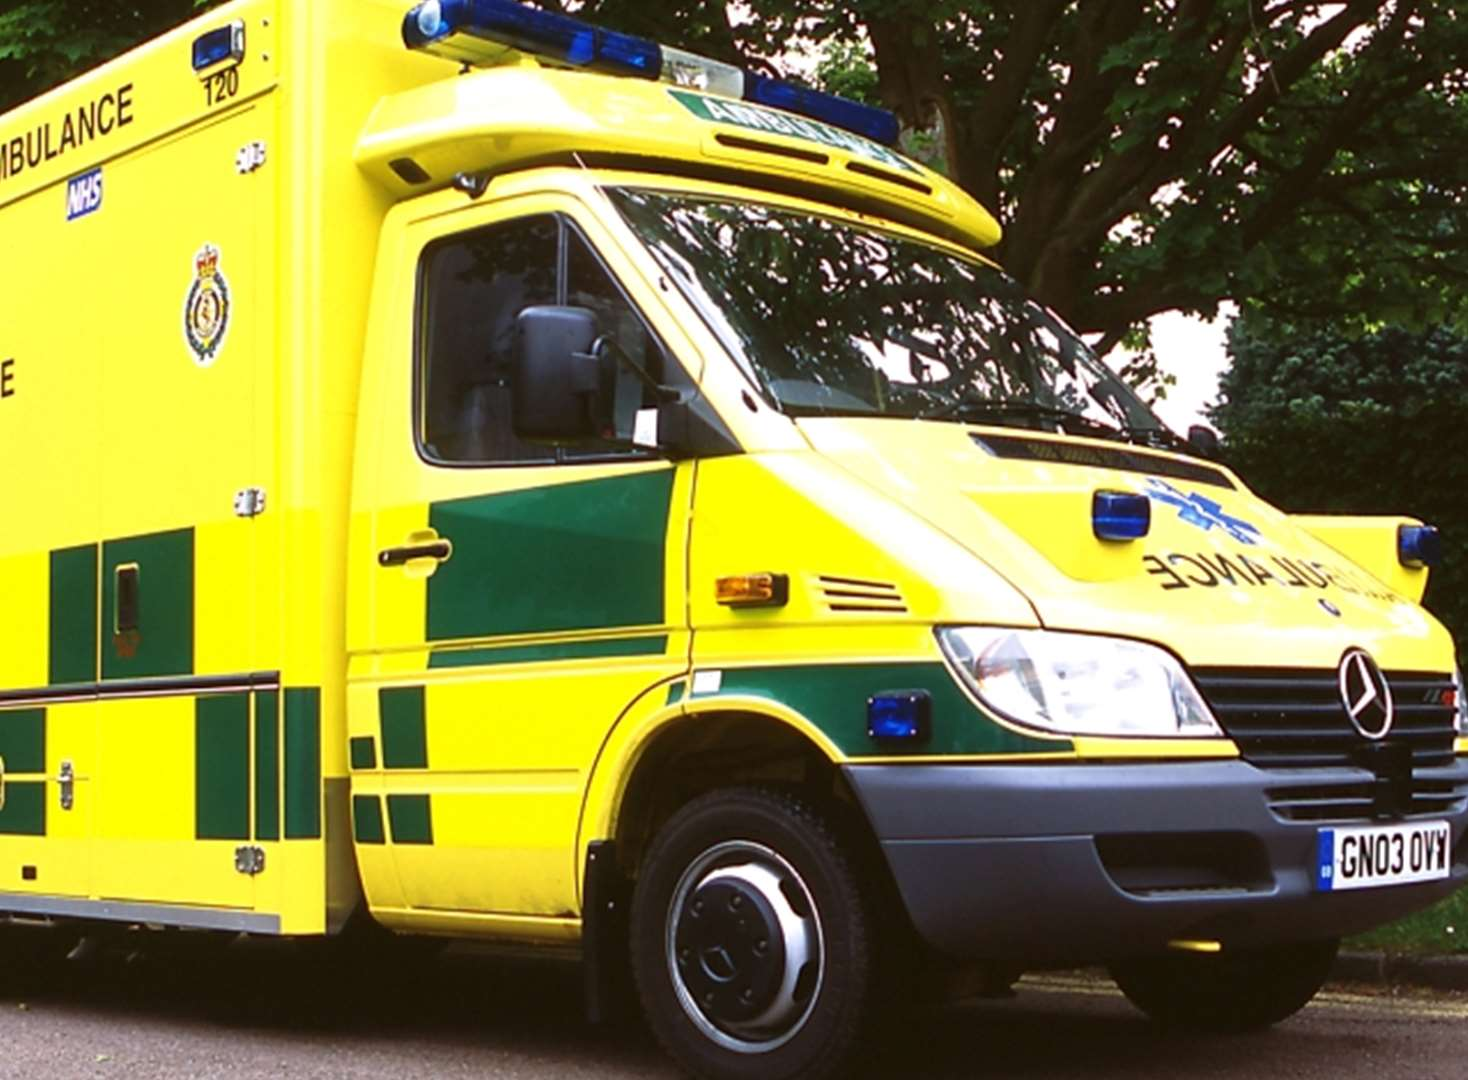 Man injured after car flips into ditch